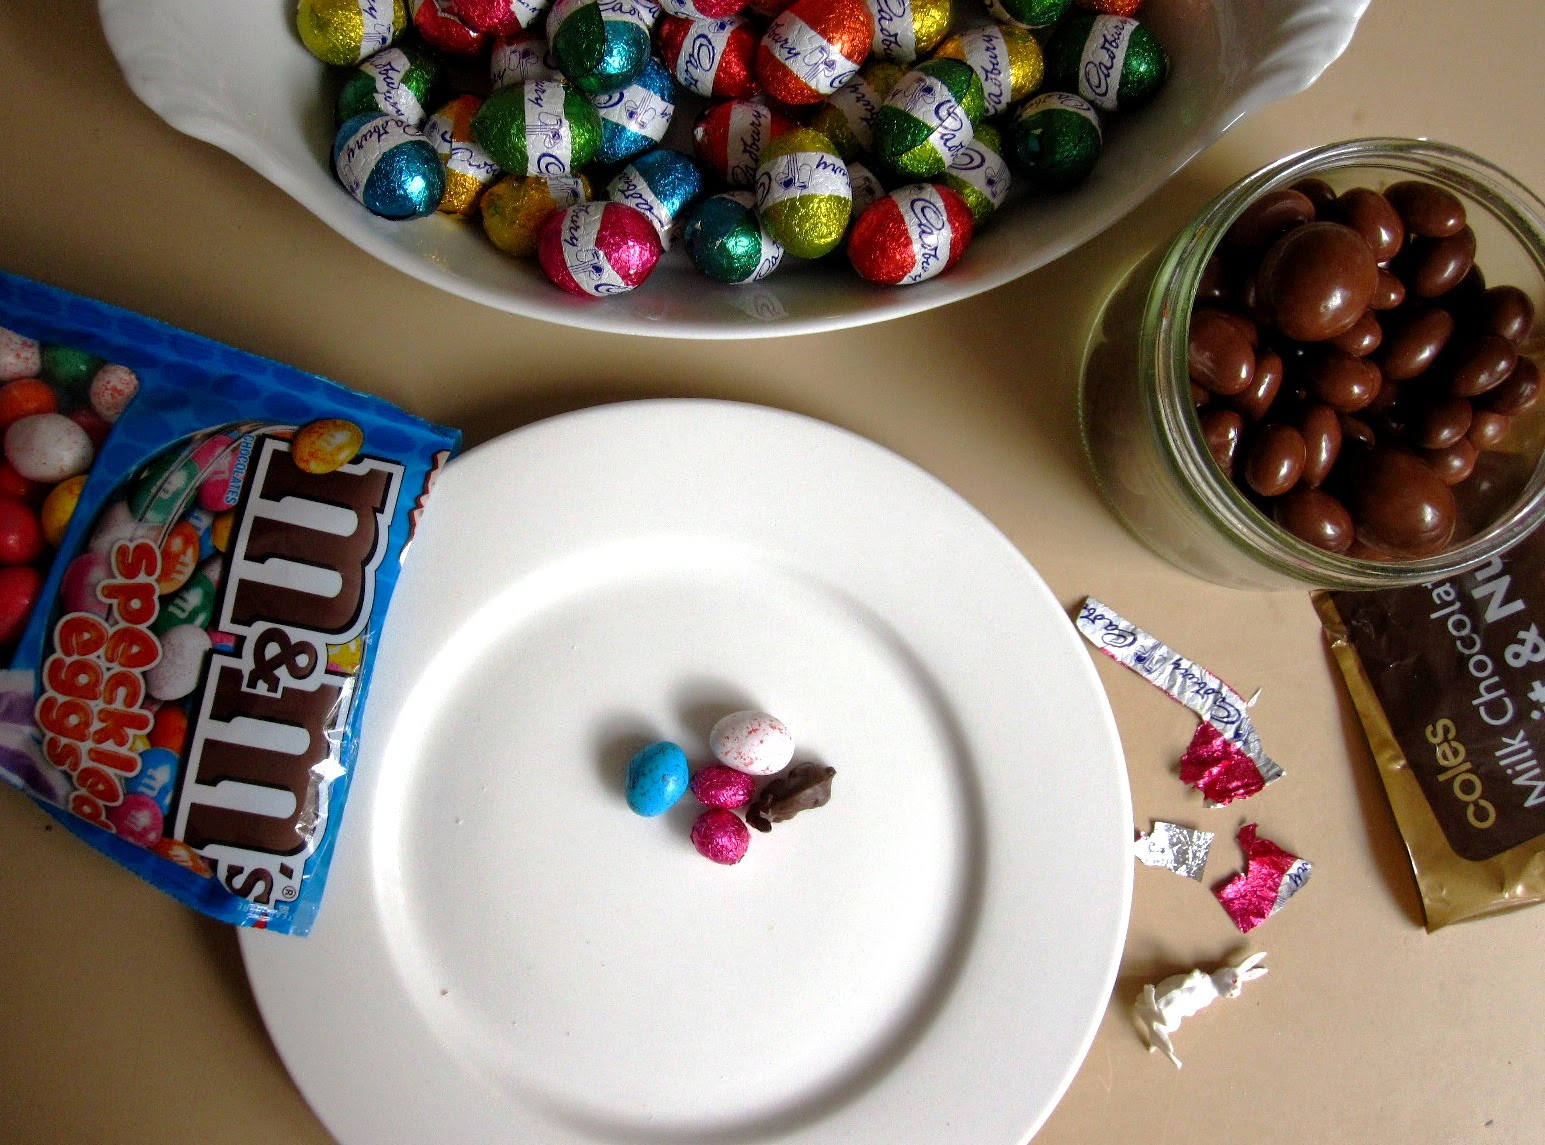 A bag of M&M speckled eggs, a bowl of Cadbury mini eggs and a jar of milk chocolate fruit and nut mix arranged around a plate with dolls' house-sized Easter eggs on it.